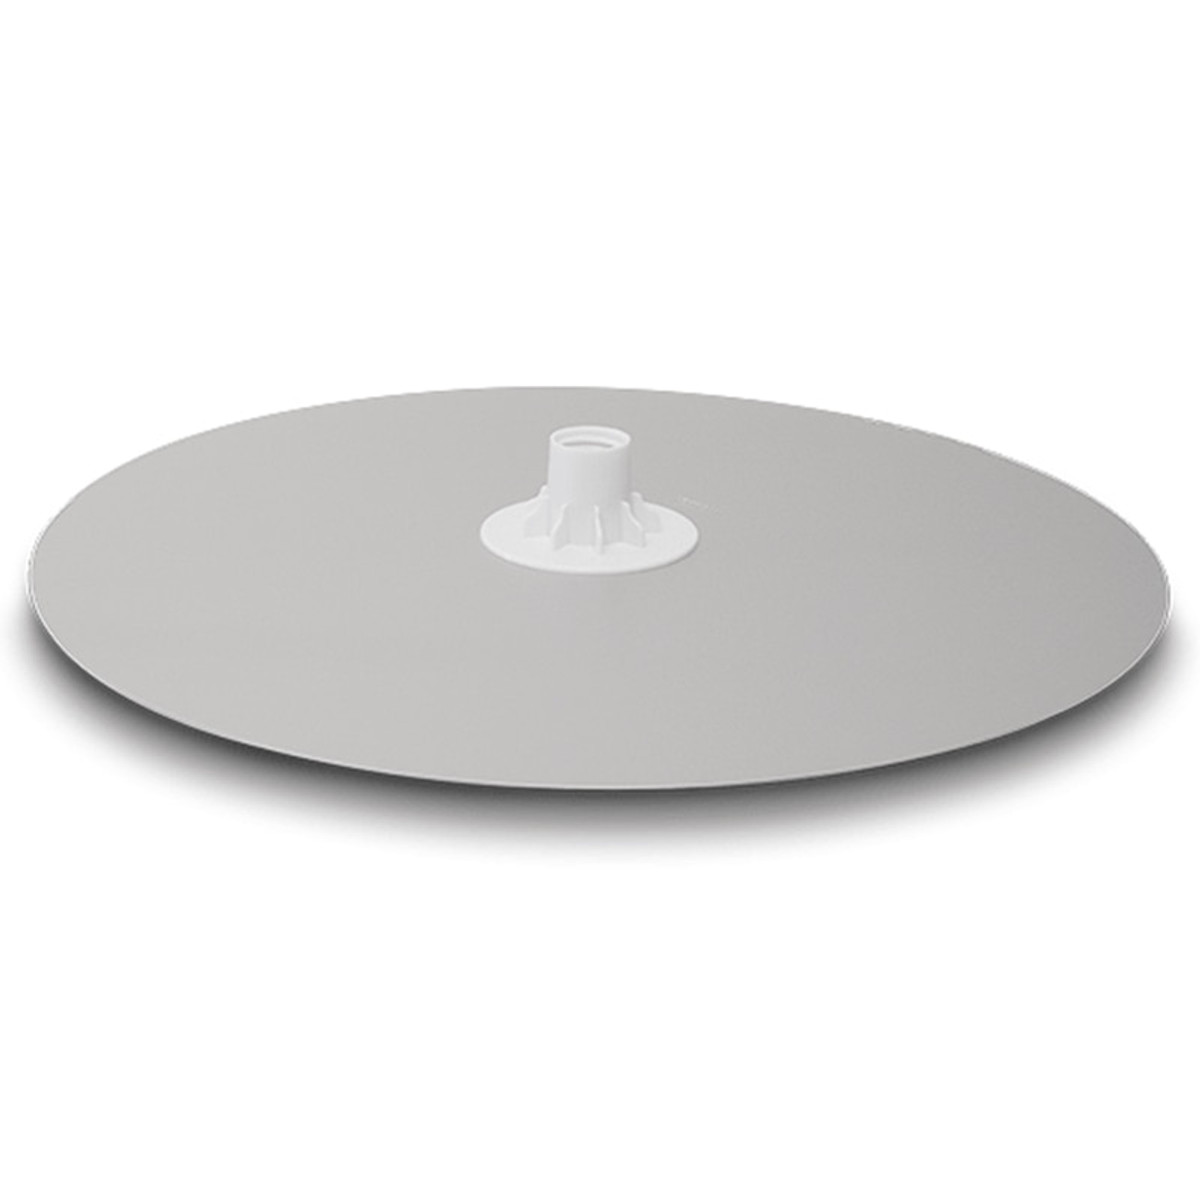 Wilson Electronics Reflector for 4G Low Profile Antenna - 904407